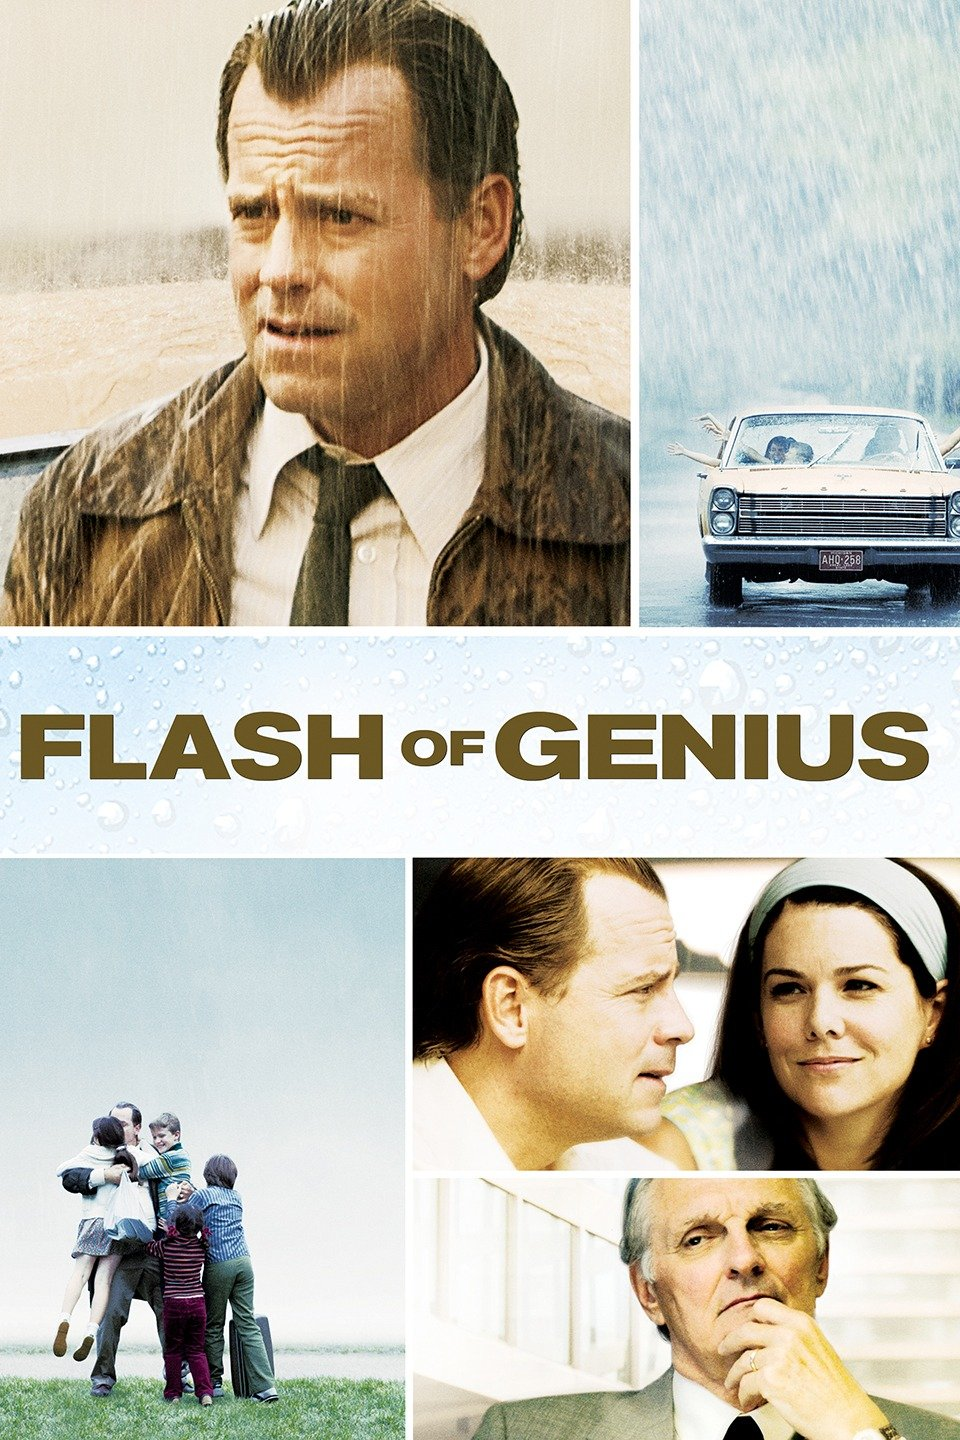 Flash of Genius-Flash of Genius